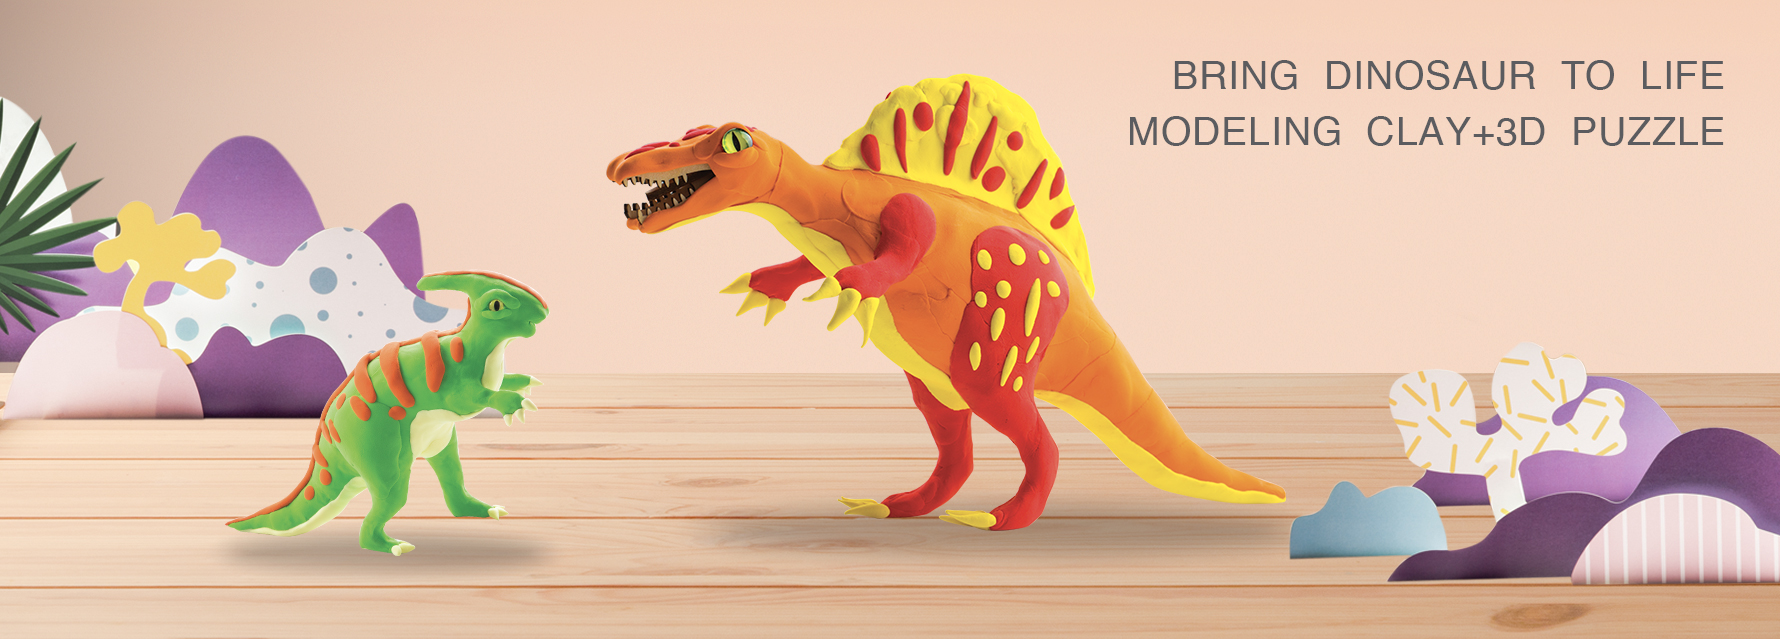 Robud 3D Modeling Clay Dinosaurs banner